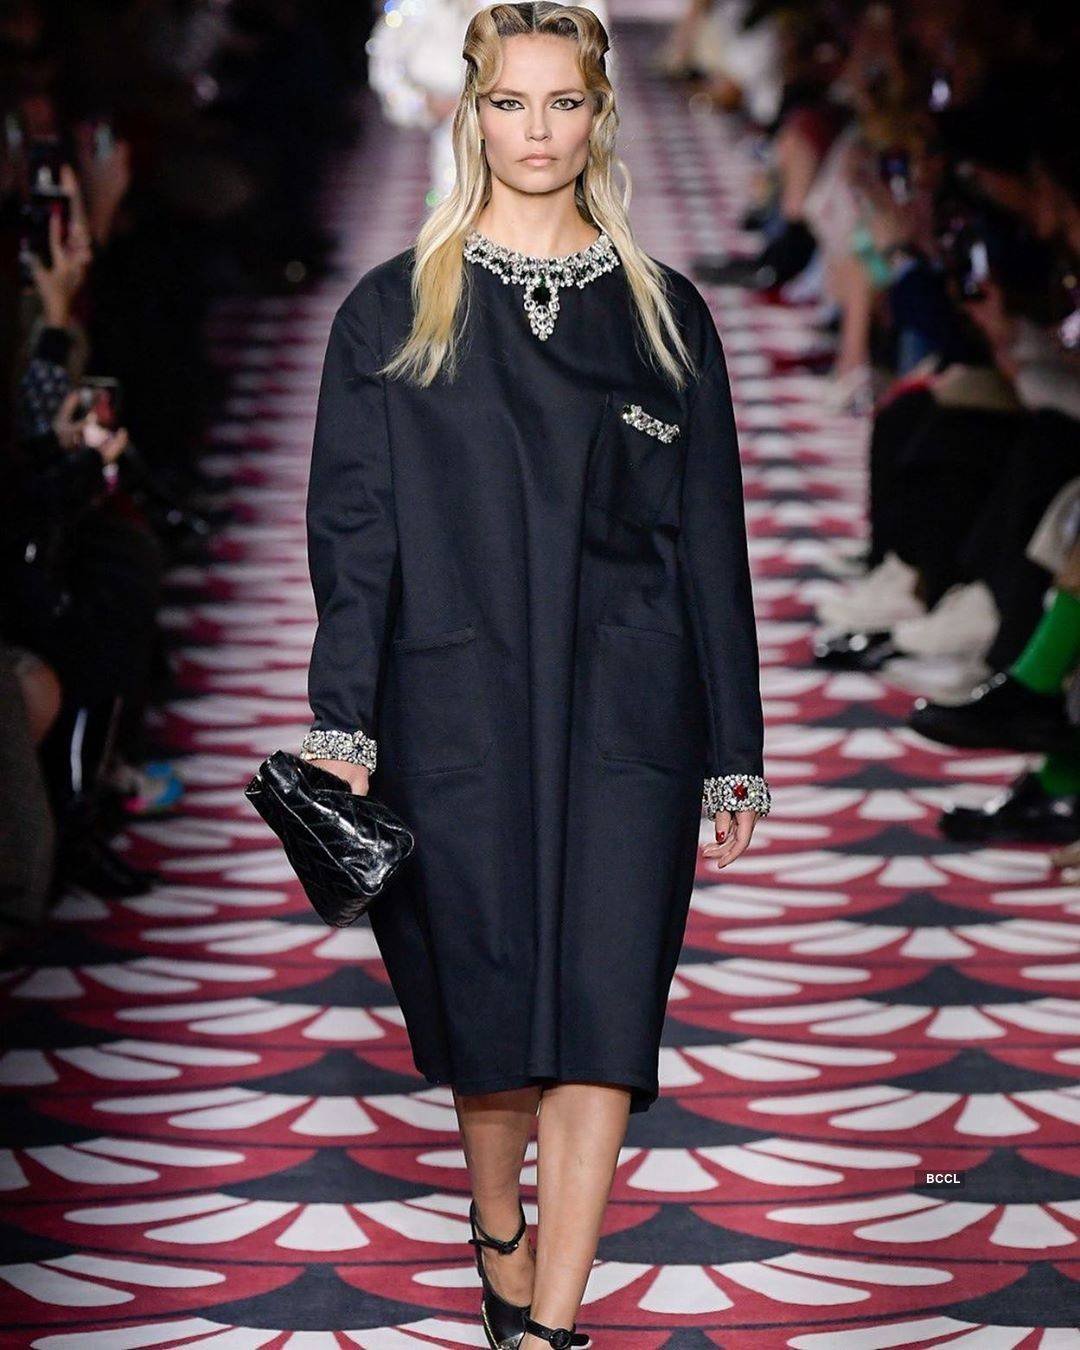 Russian beauty Natasha Poly known for her theatrical moves during the fashion shows is back in business